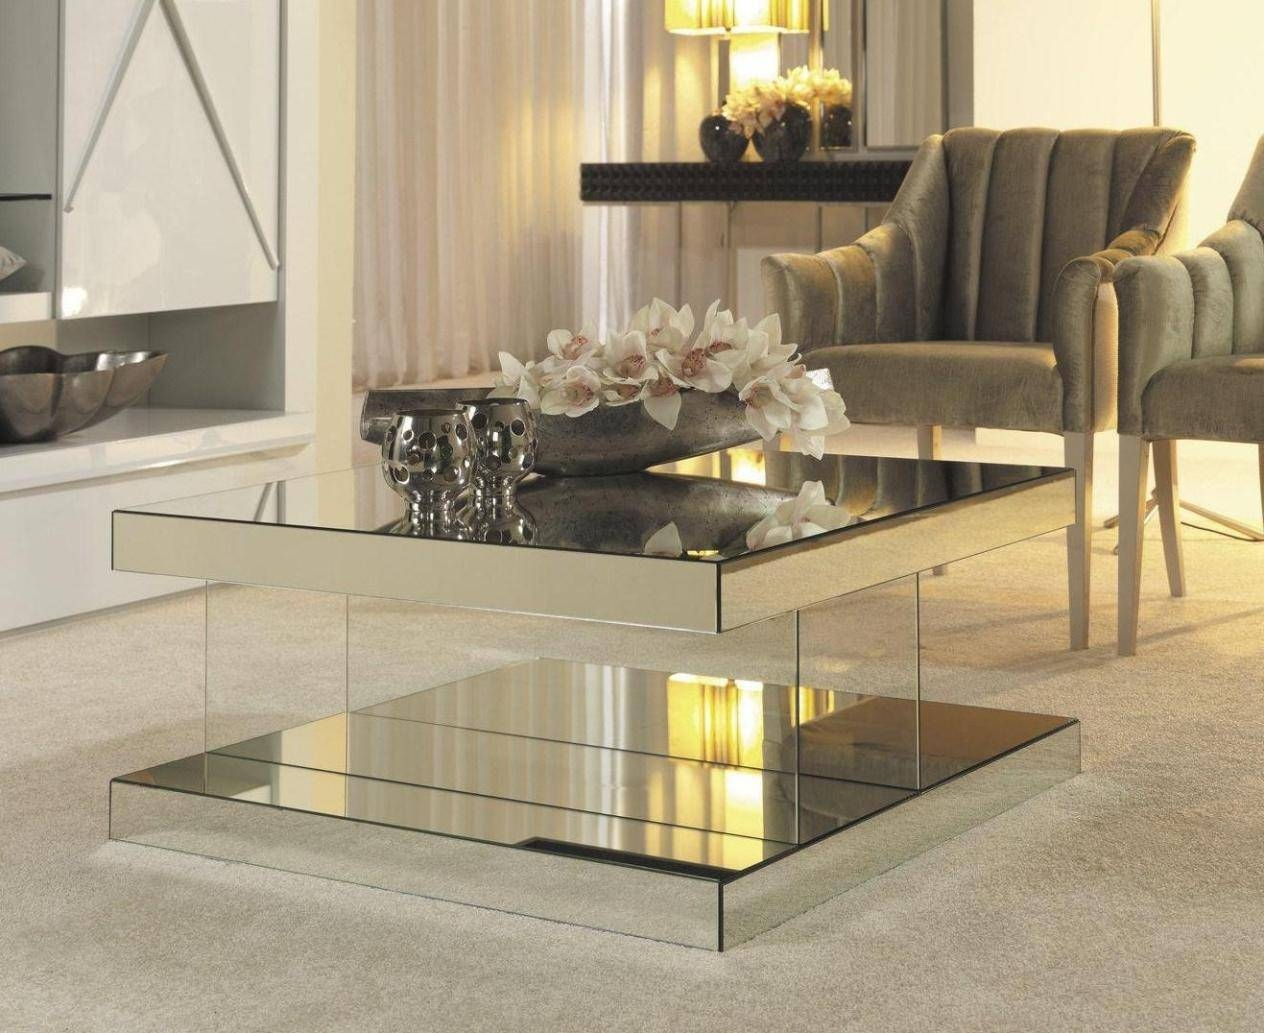 Coffee Table: Stunning Mirrored Coffee Table Design Ideas Mirror regarding Coffee Tables Mirrored (Image 7 of 30)